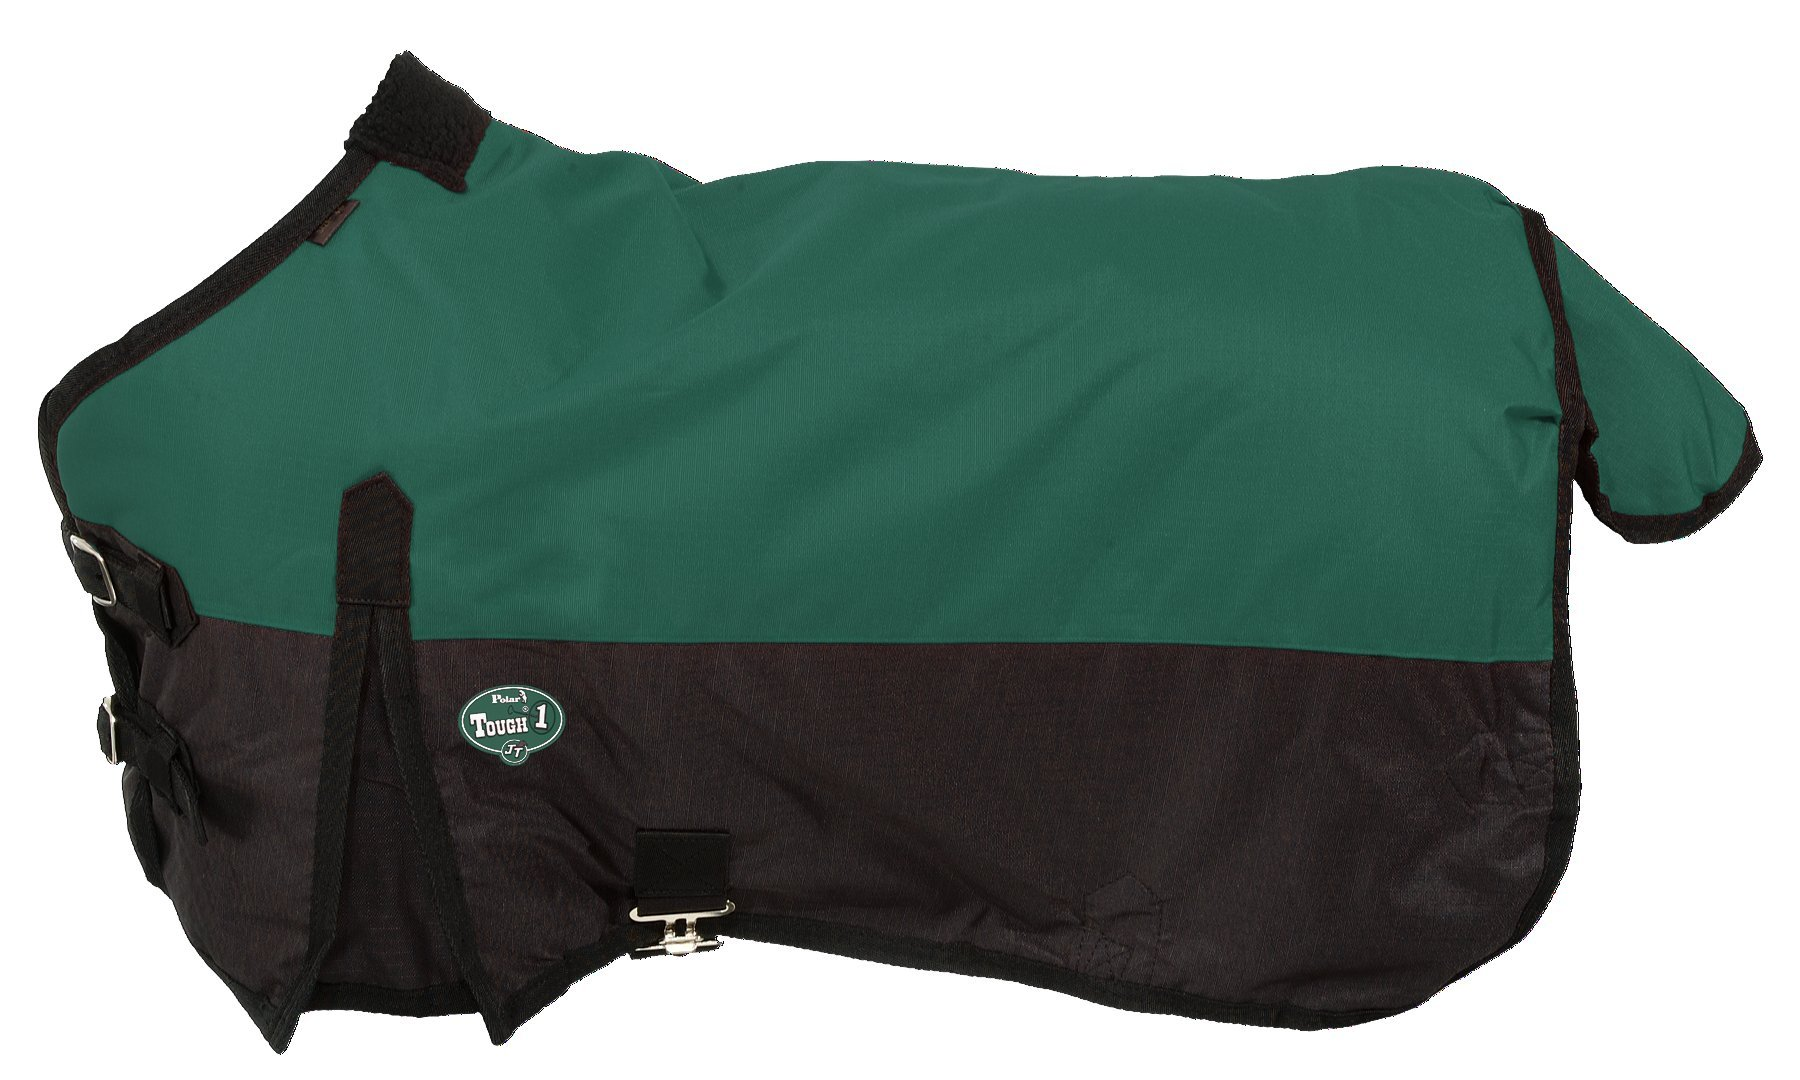 Tough 1 600D Waterproof Poly Miniature Turnout Blanket, Hunter Green, 46''